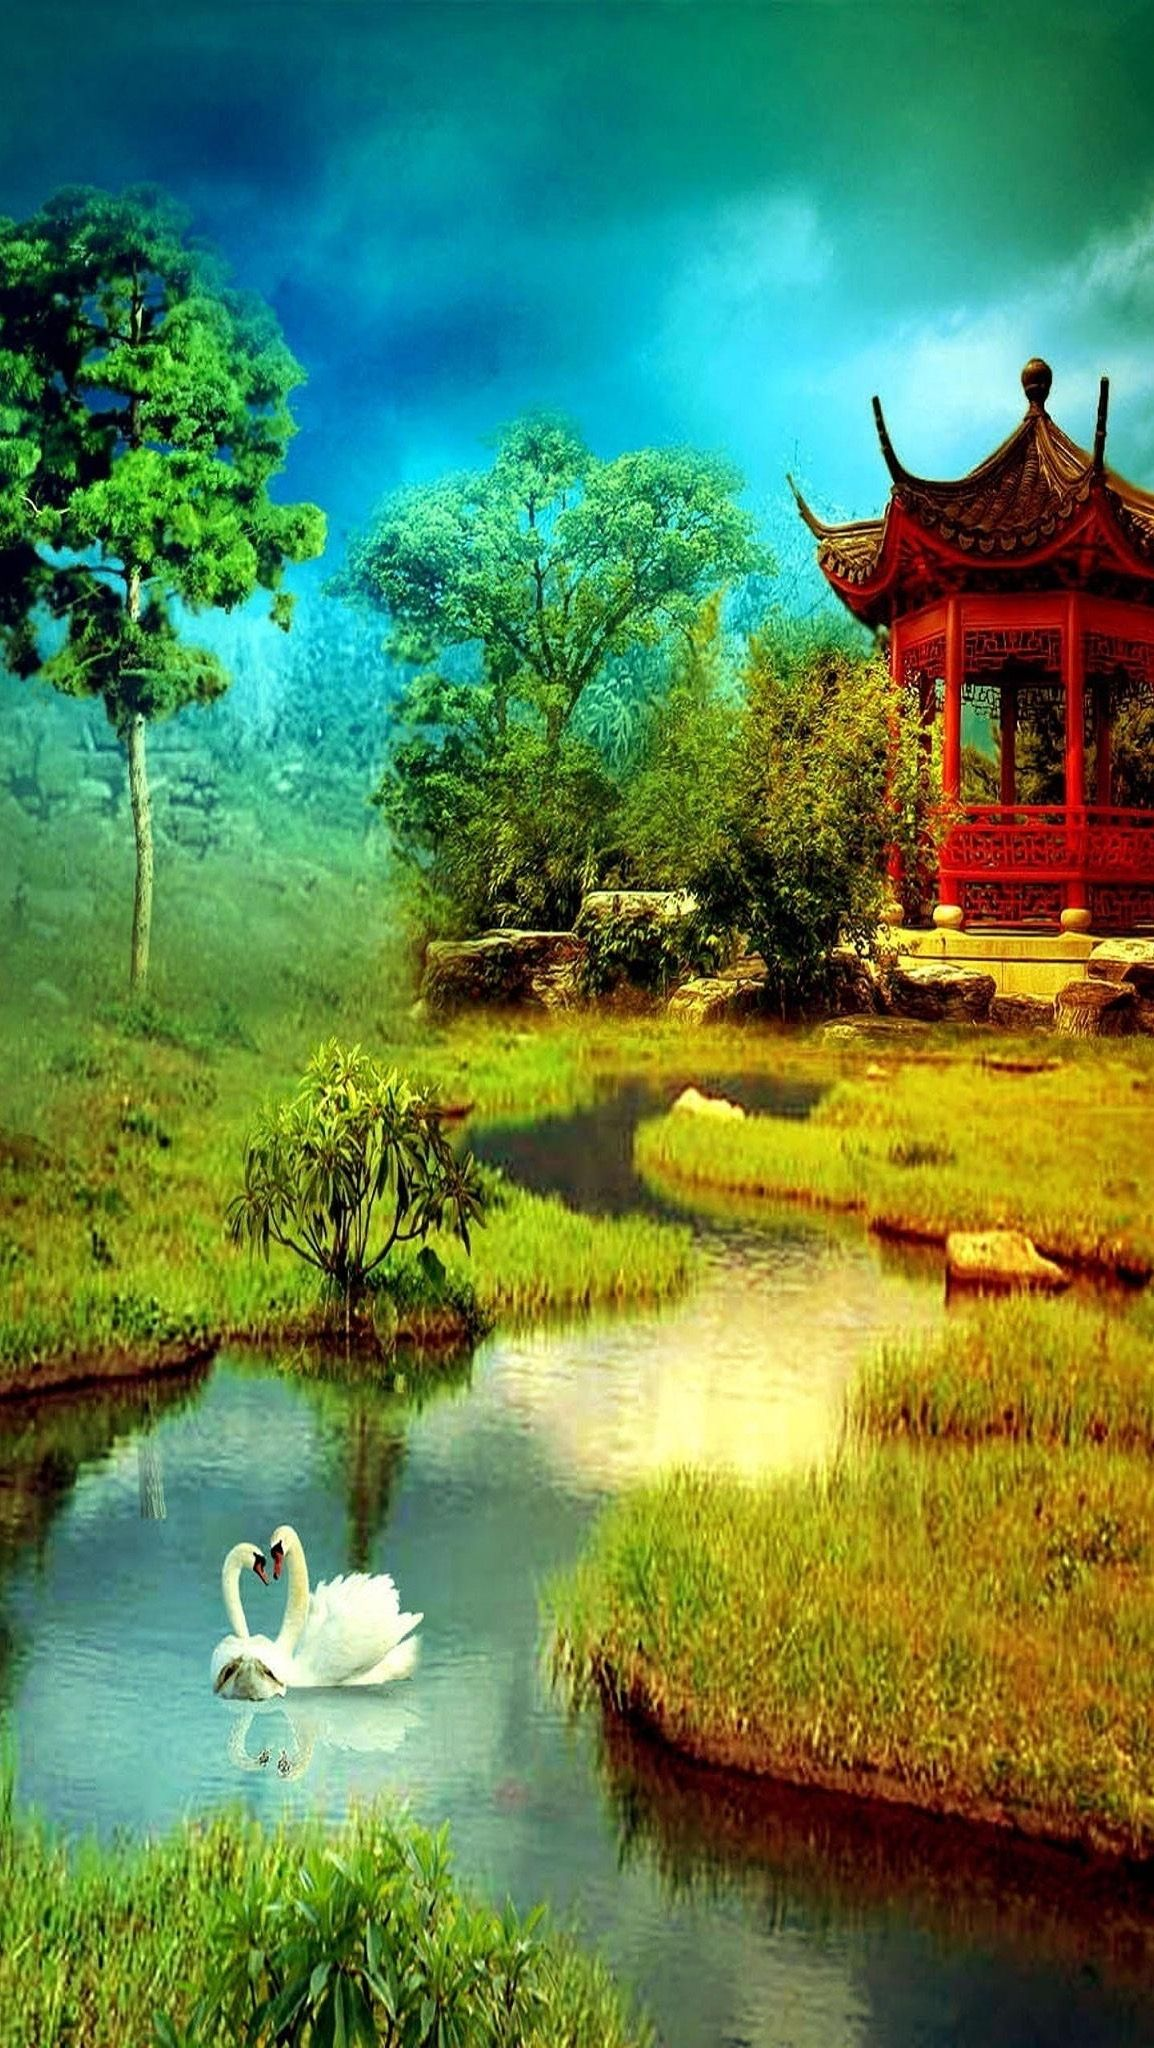 Pin by Ai Nguyen on Arts | 3d wallpaper for mobile, Nature ...